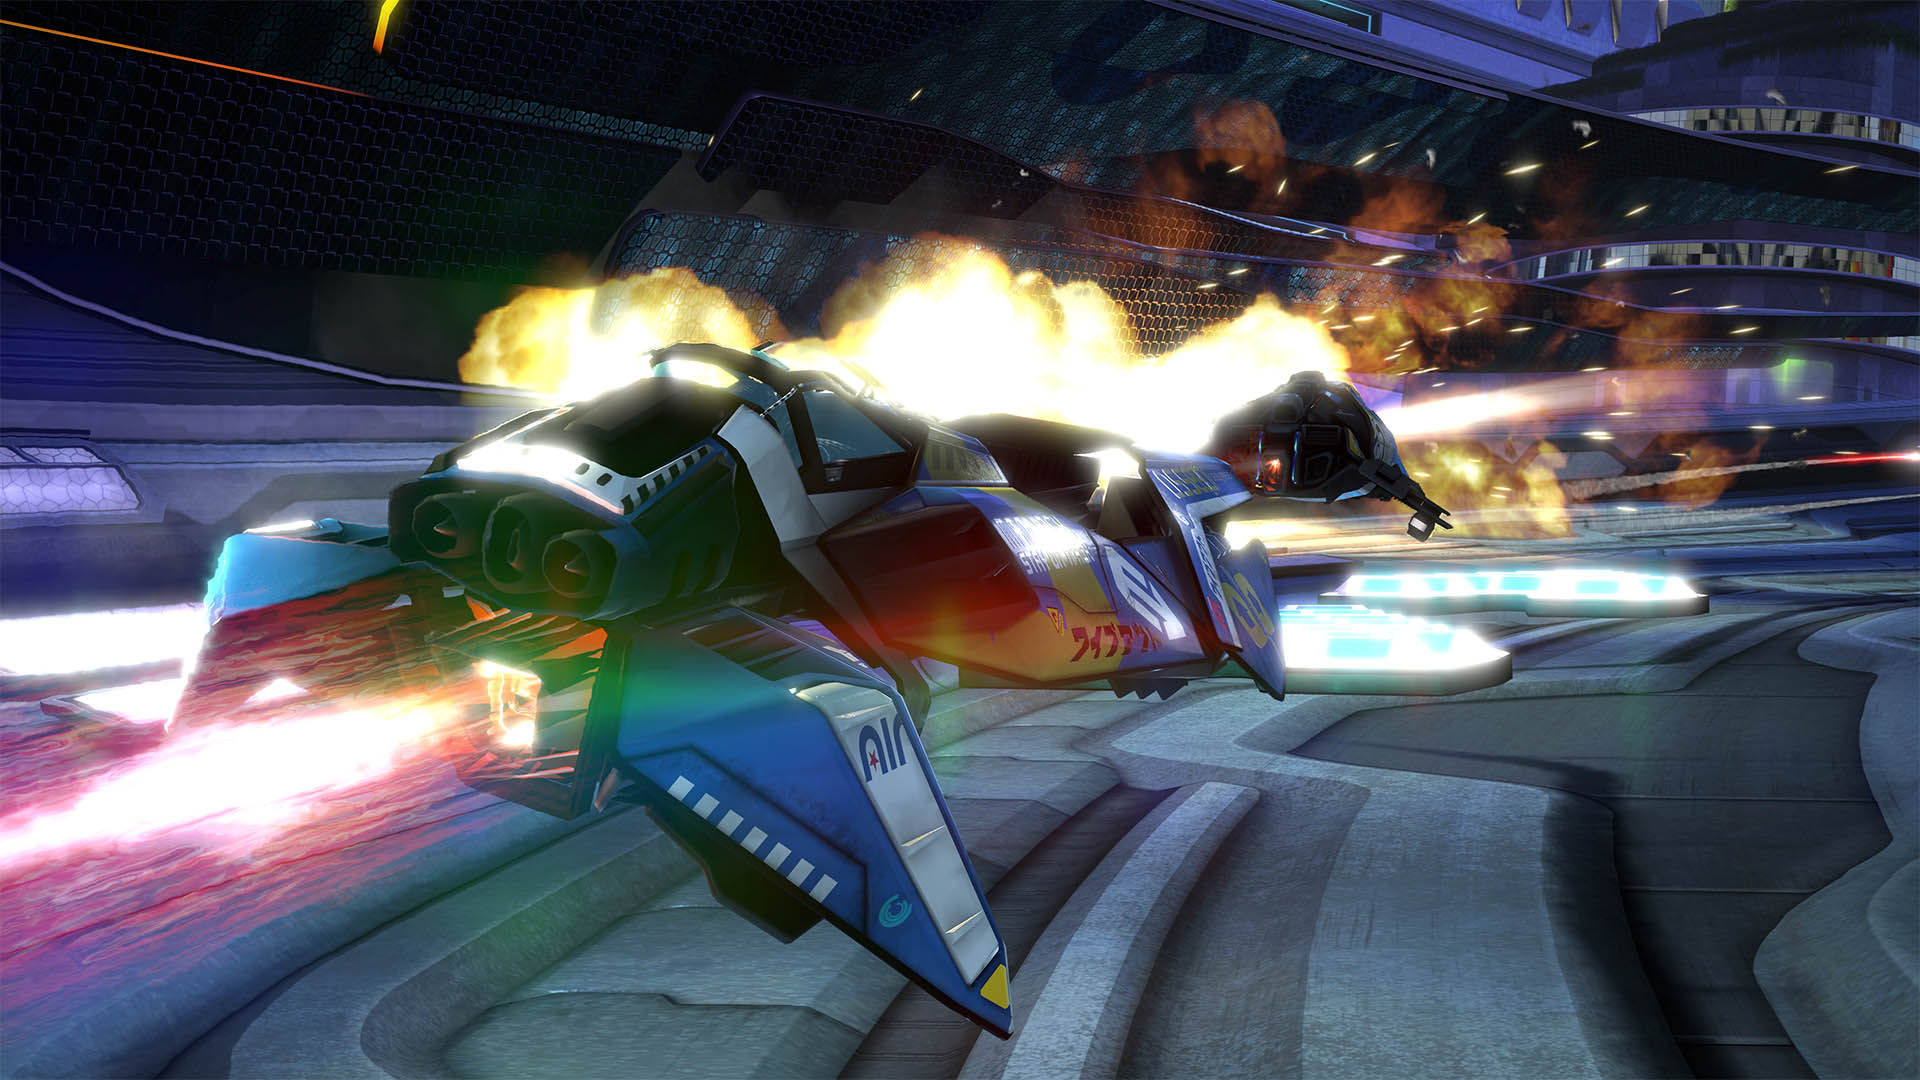 Sony Announces Wipeout VR – Coming To PSVR Early 2018